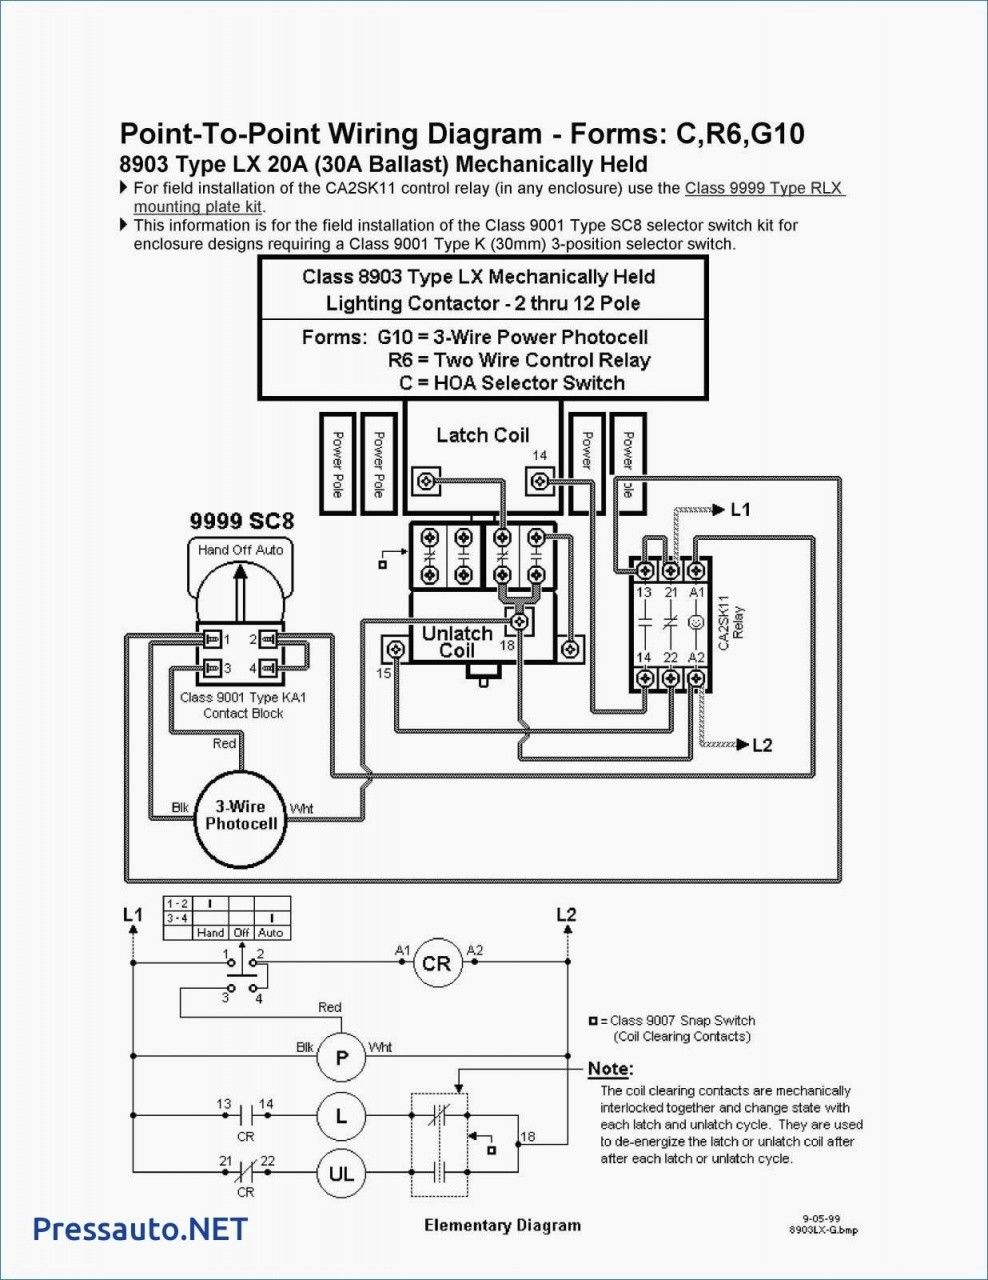 Tork Wiring Schematic For Lighting Contactor And Photocell In 2020 Diagram Unique Lighting Circuit Diagram